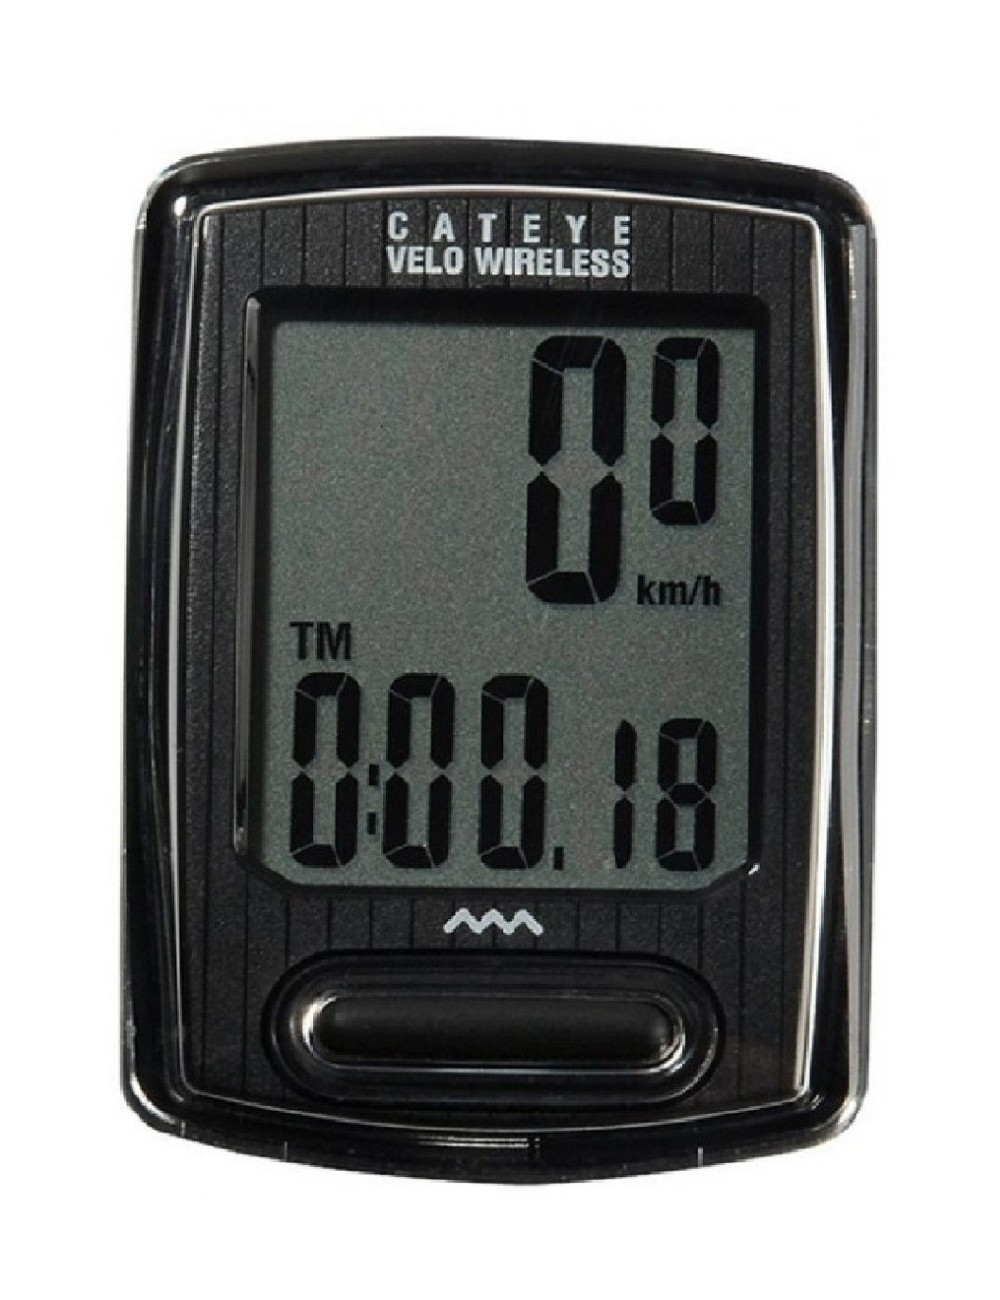 CICLOCOMPUTADOR CATEYE VELO WIRELESS PRETO